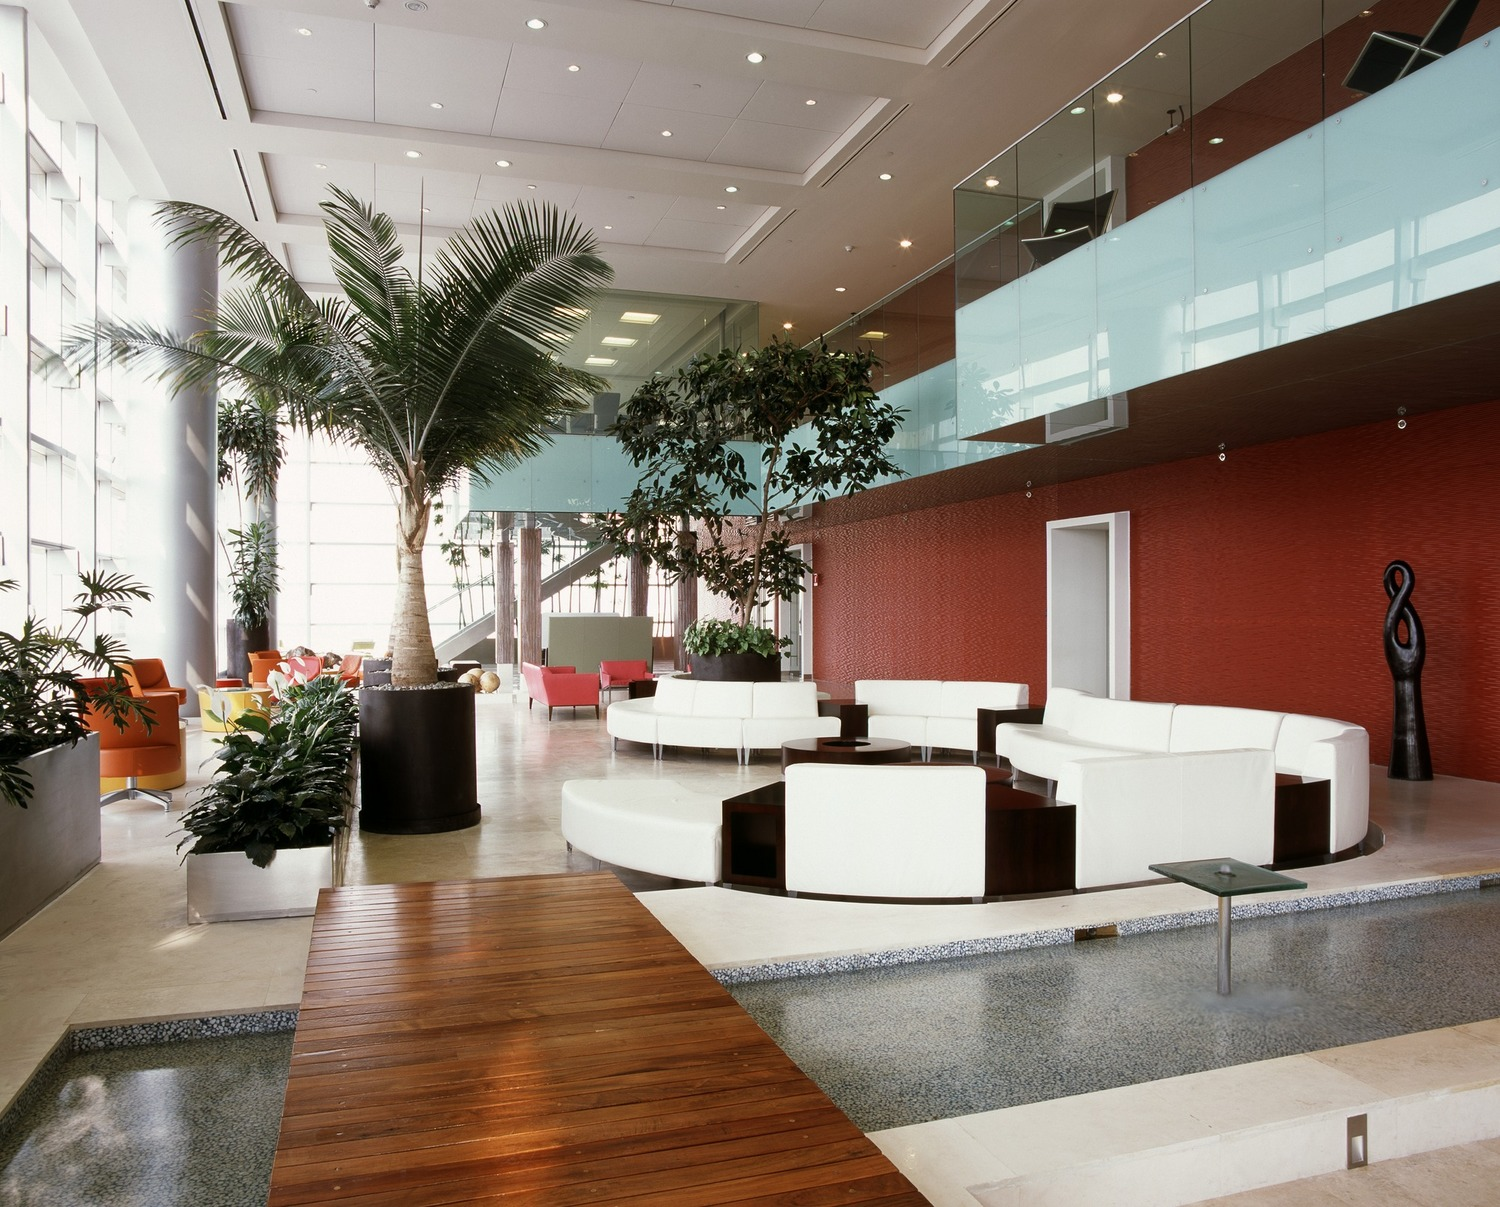 Previously Earned The 2007 National Interiors Award And Top For Corporate Interior Design From Mexican Association AMDI